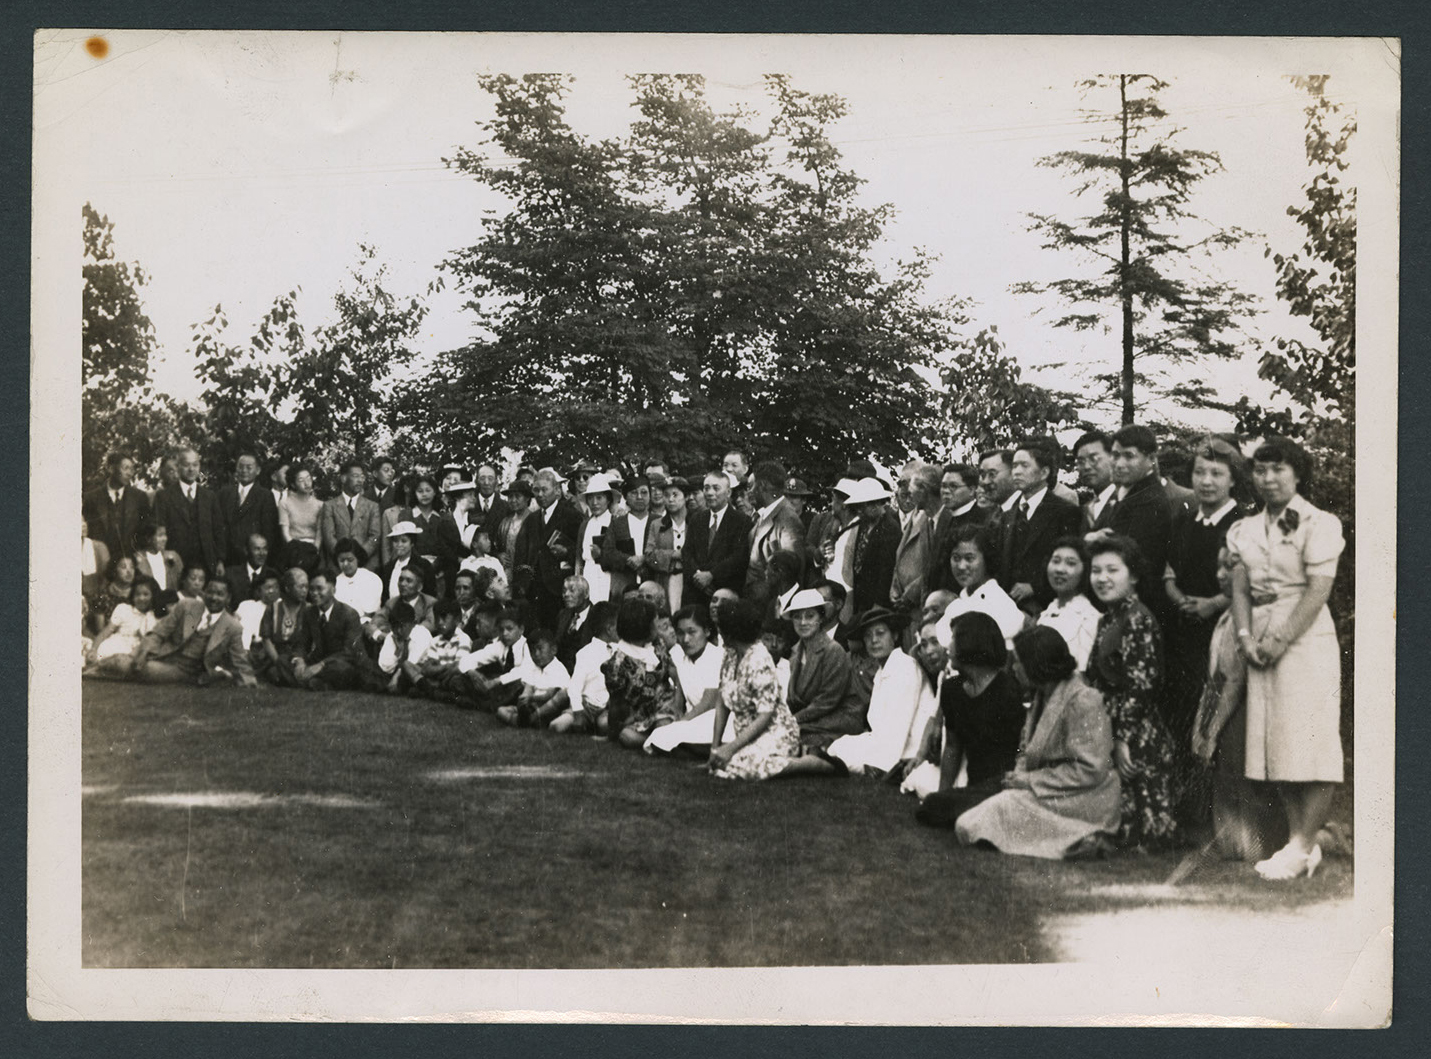 Congregation in the park